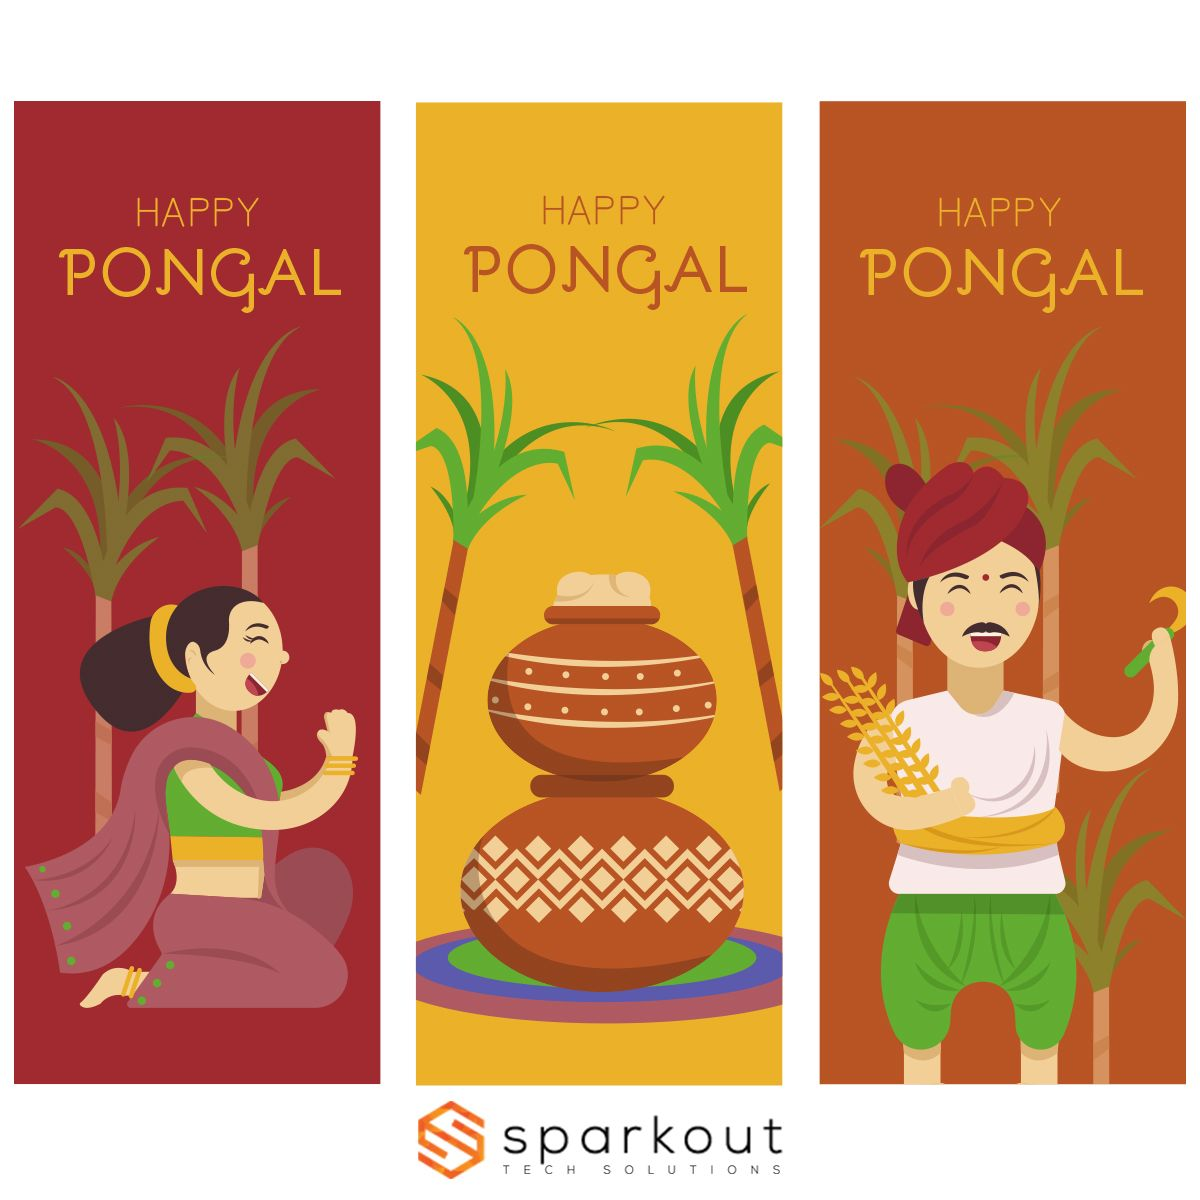 Home On Demand Apps Vector free, Happy pongal, Free